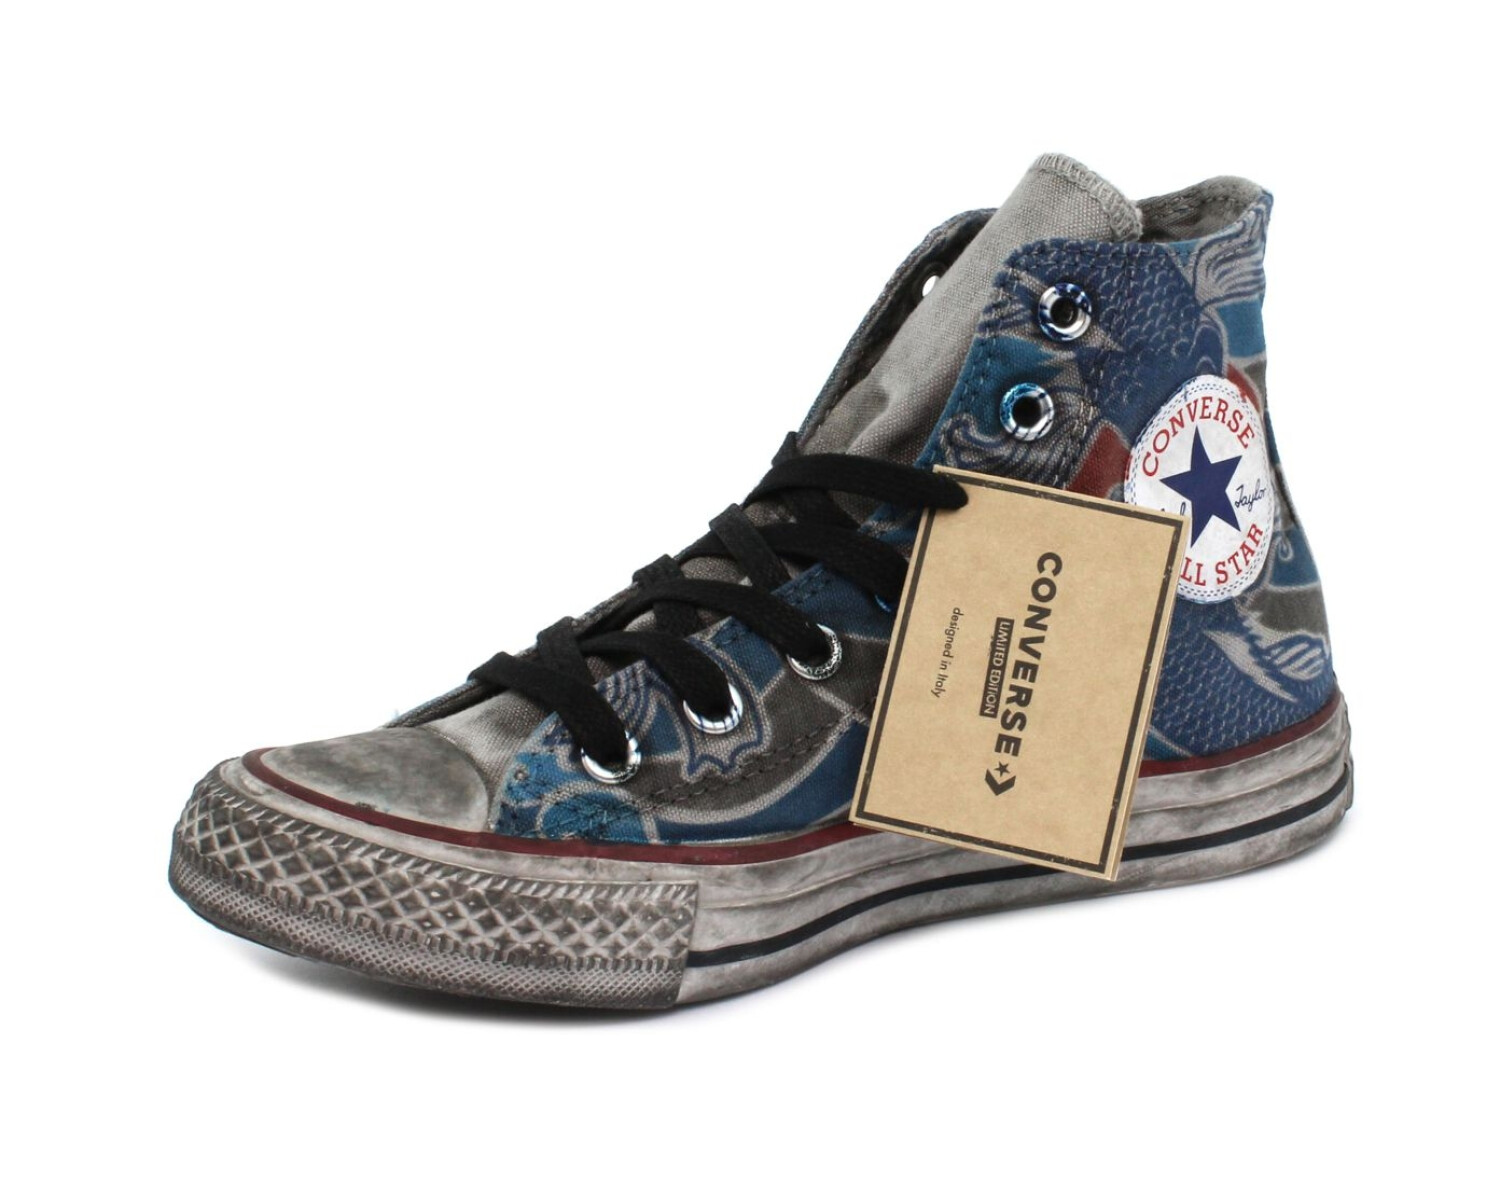 Sneaker CONVERSE CTAS CANVAS LTD HI TATTOO GOLDFISH 167392C